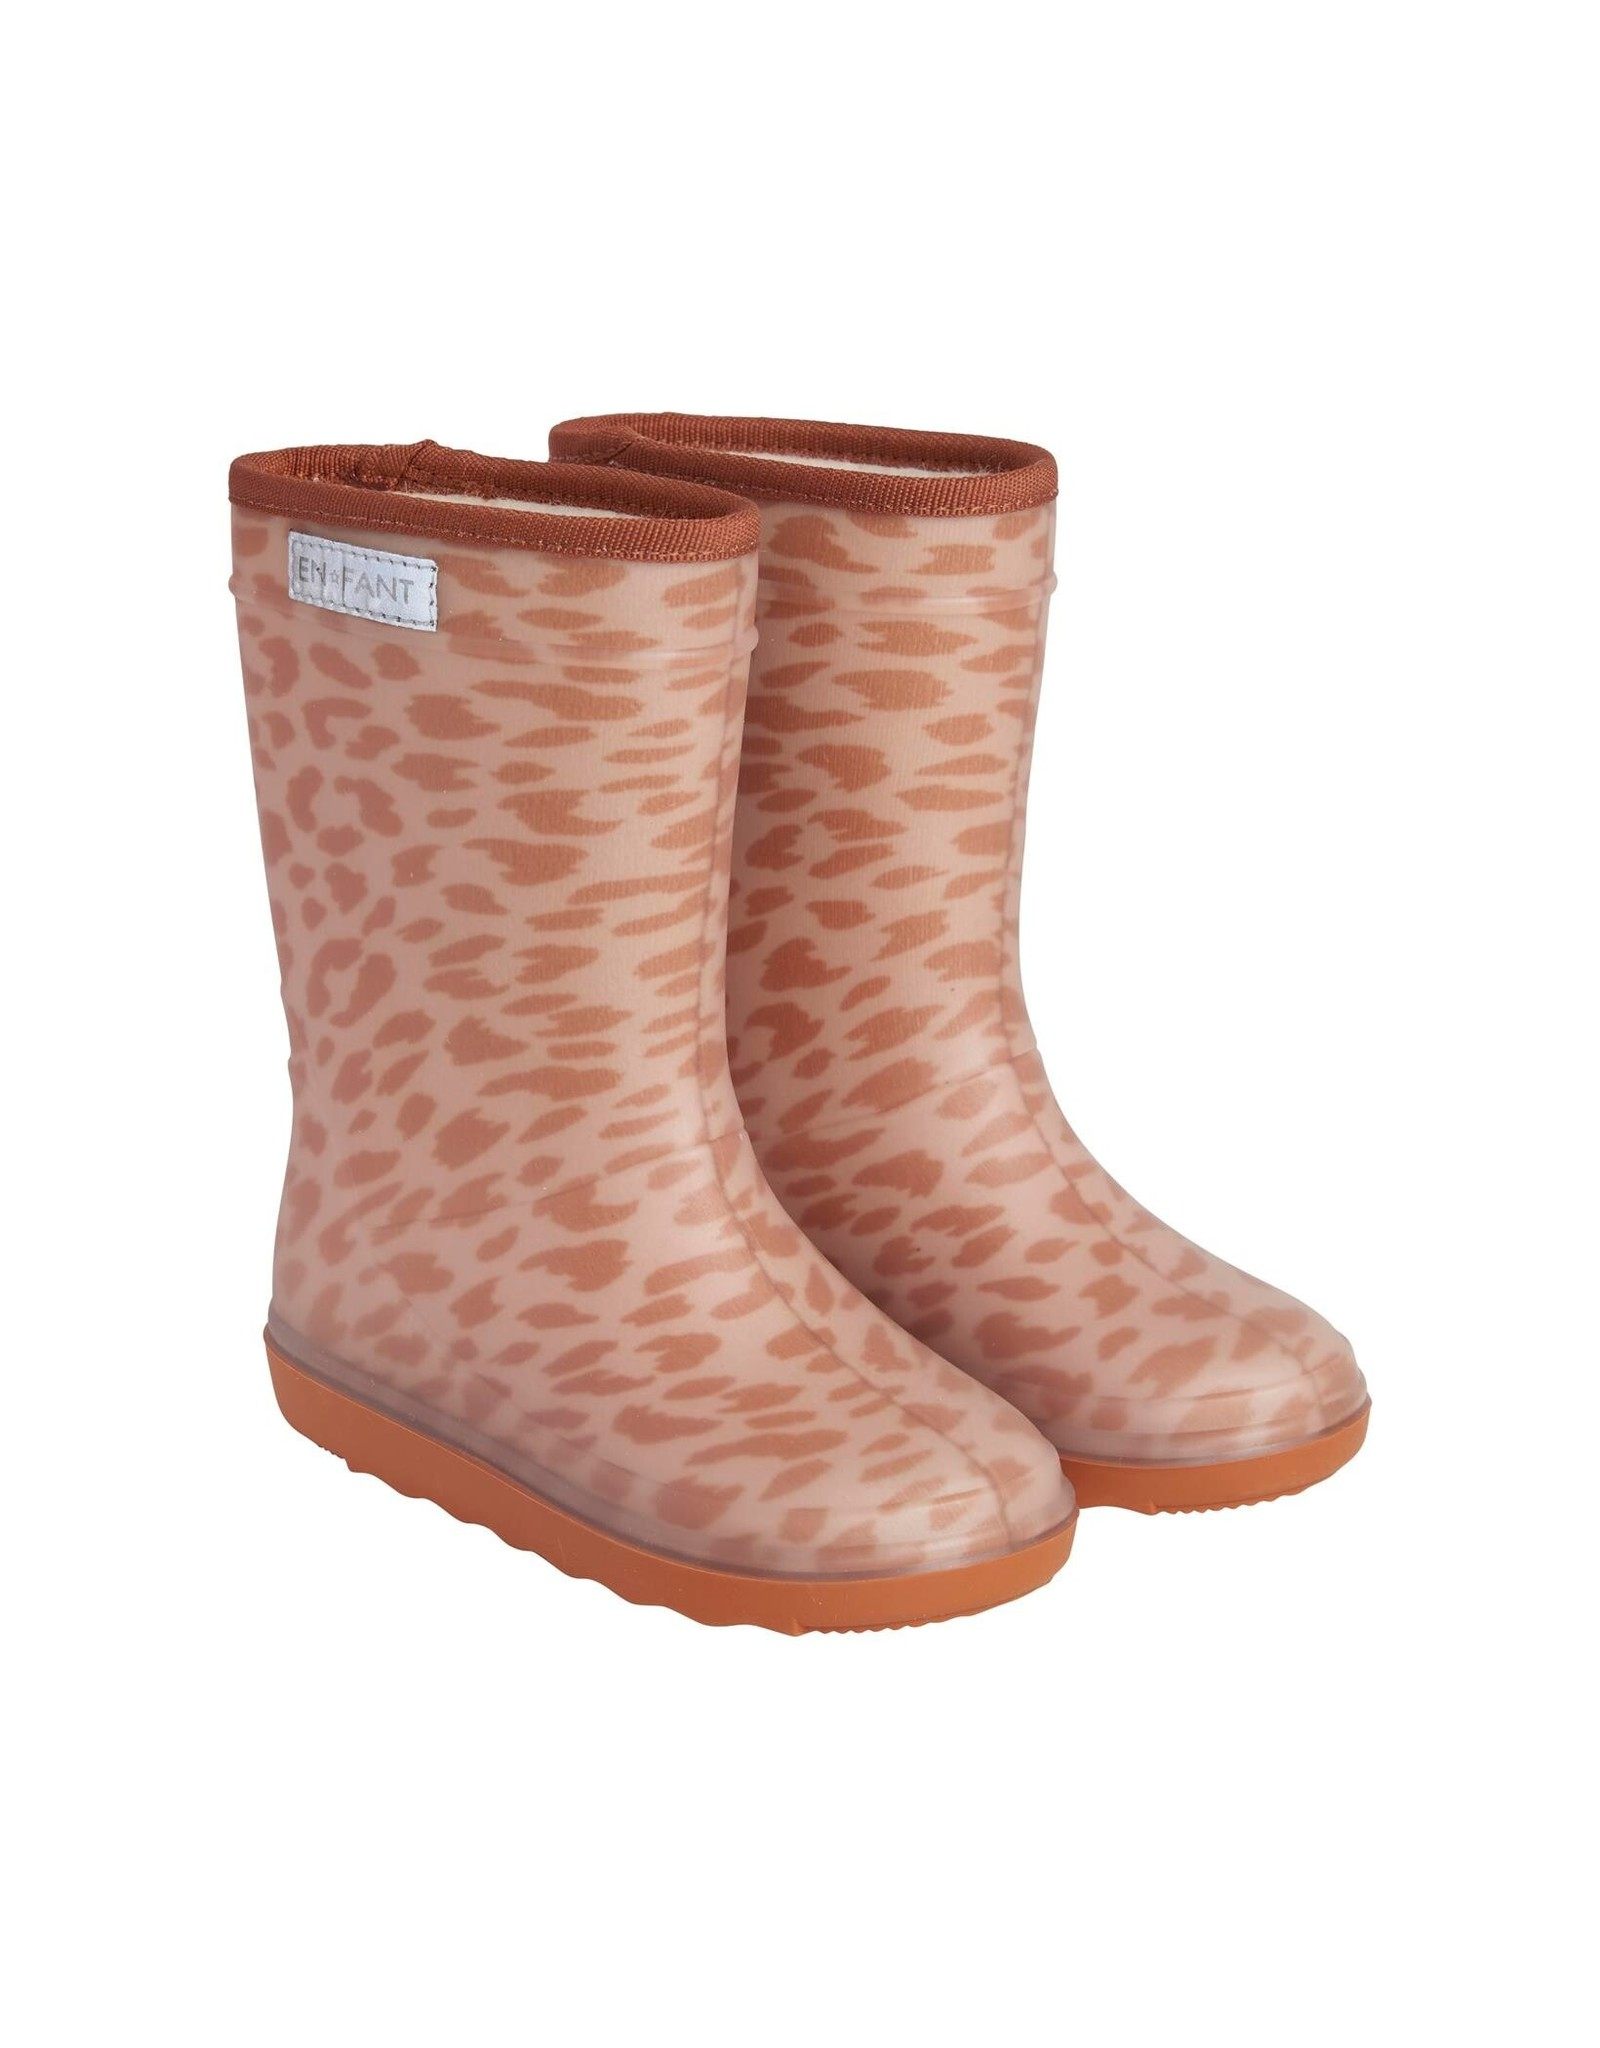 En Fant Thermo boots print leather brown